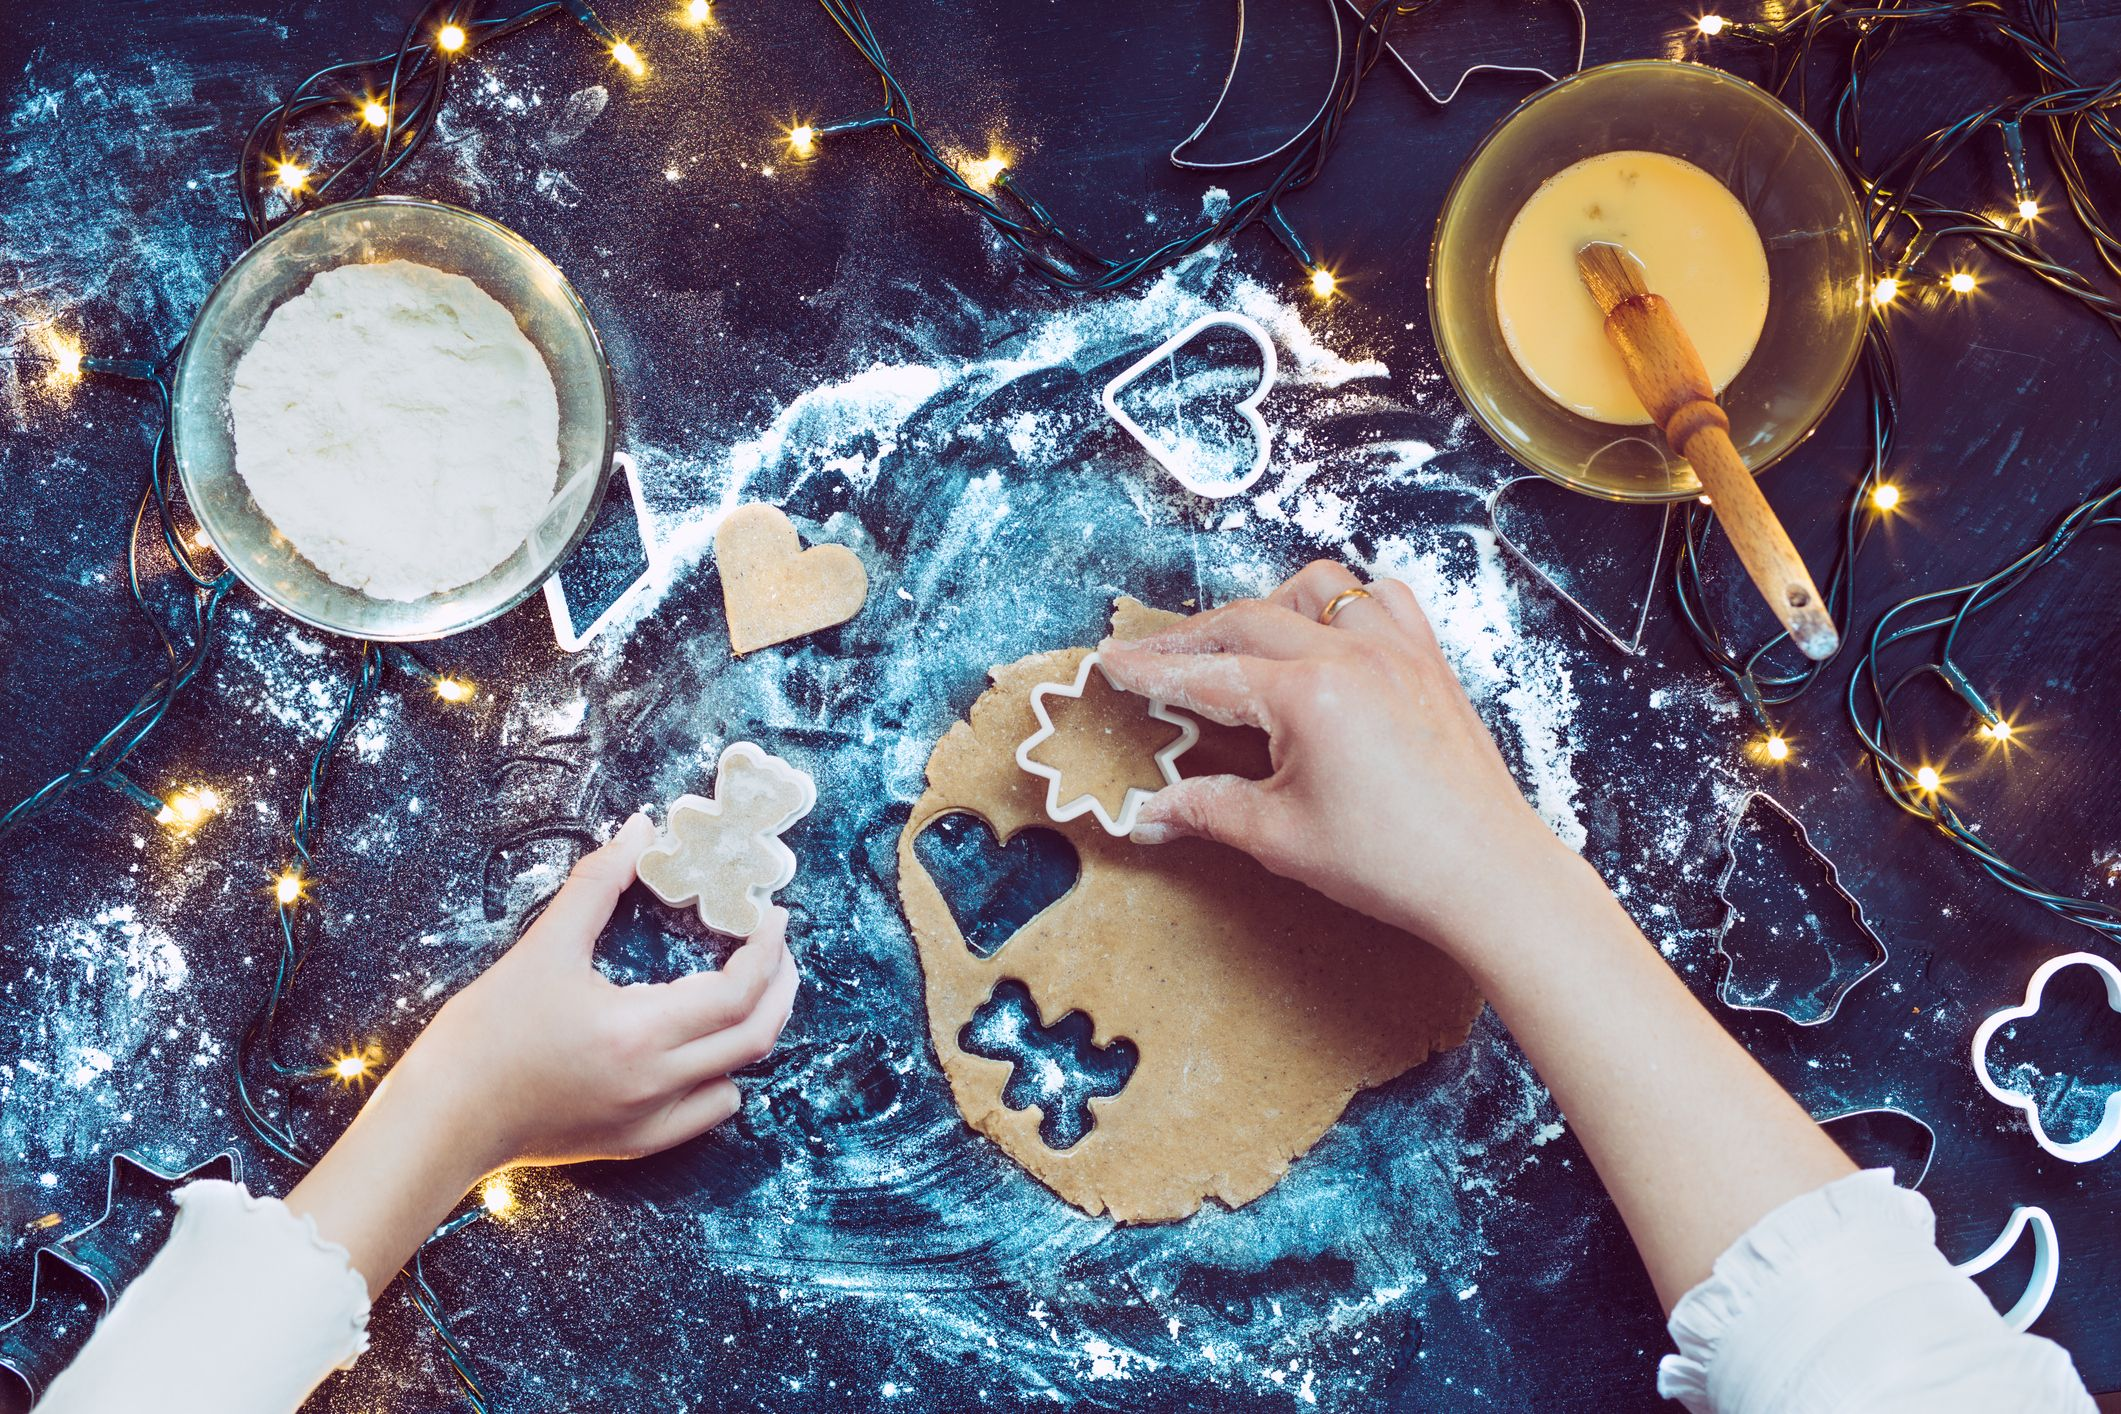 20 Super Fun Christmas Activities to Make Your Day Even Merrier